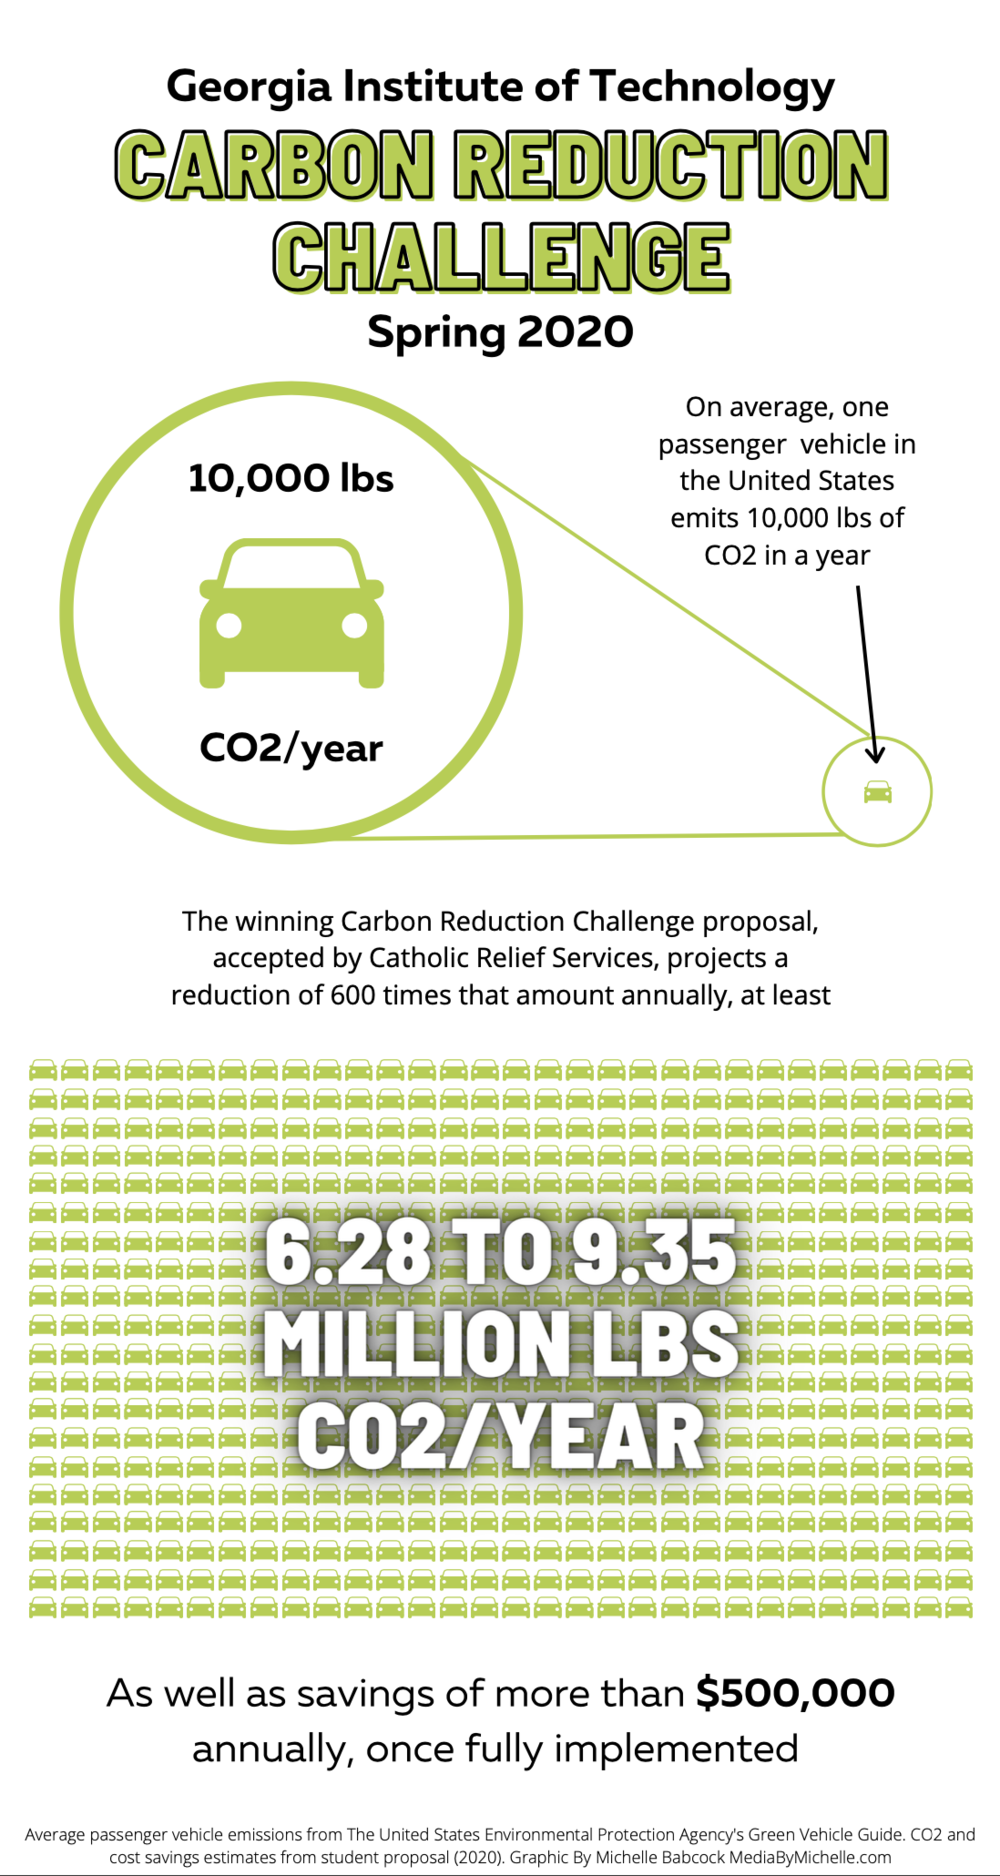 A graphic depicting projected annual savings from the winners of the Spring 2020 Carbon Reduction Challenge.